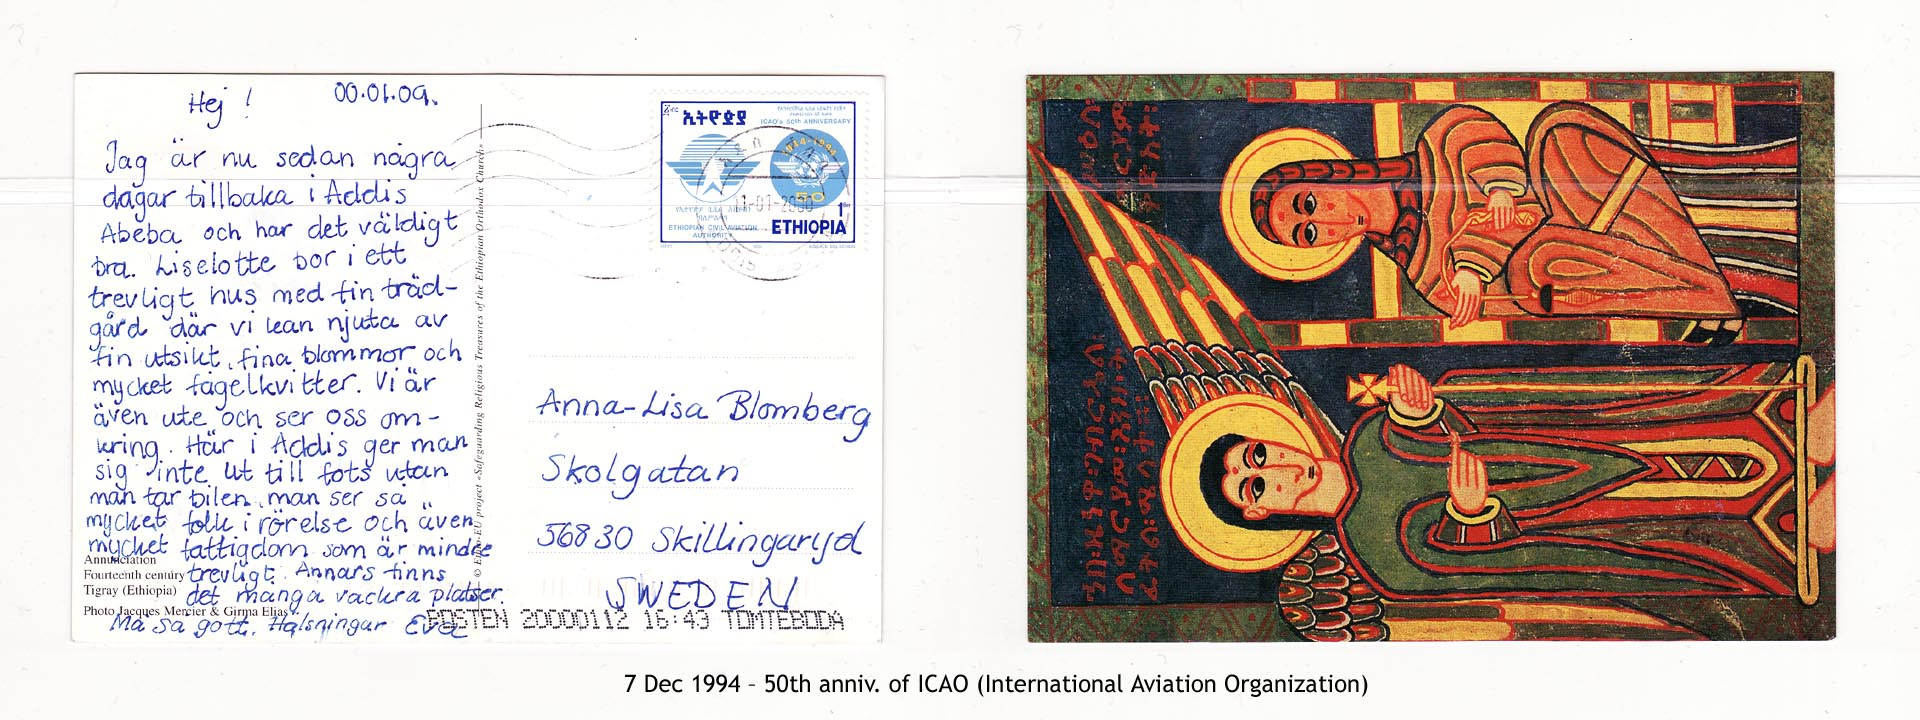 19941207 – 50th anniv. of ICAO (International Aviation Organization)